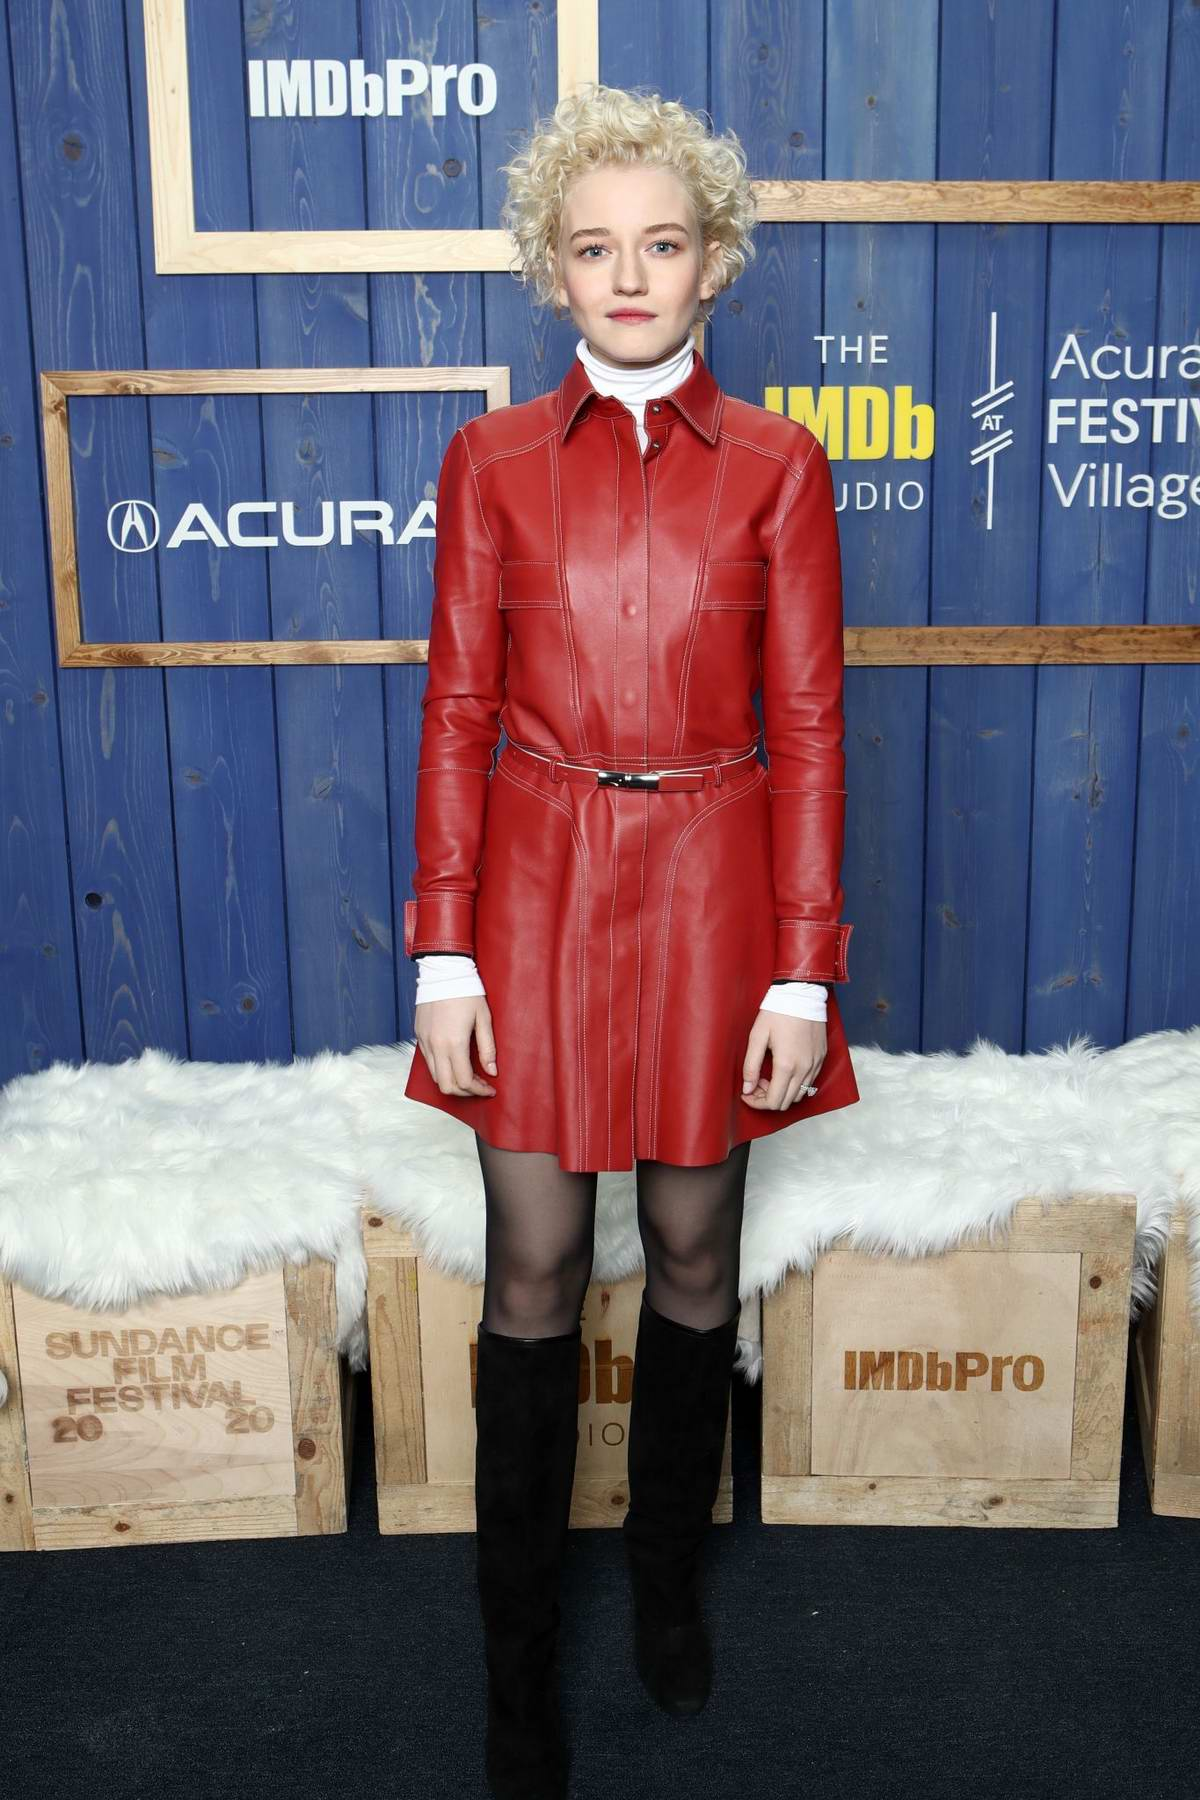 Julia Garner attends the IMDb Studio at Acura Festival Village during the Sundance Film Festival 2020 in Park City, Utah